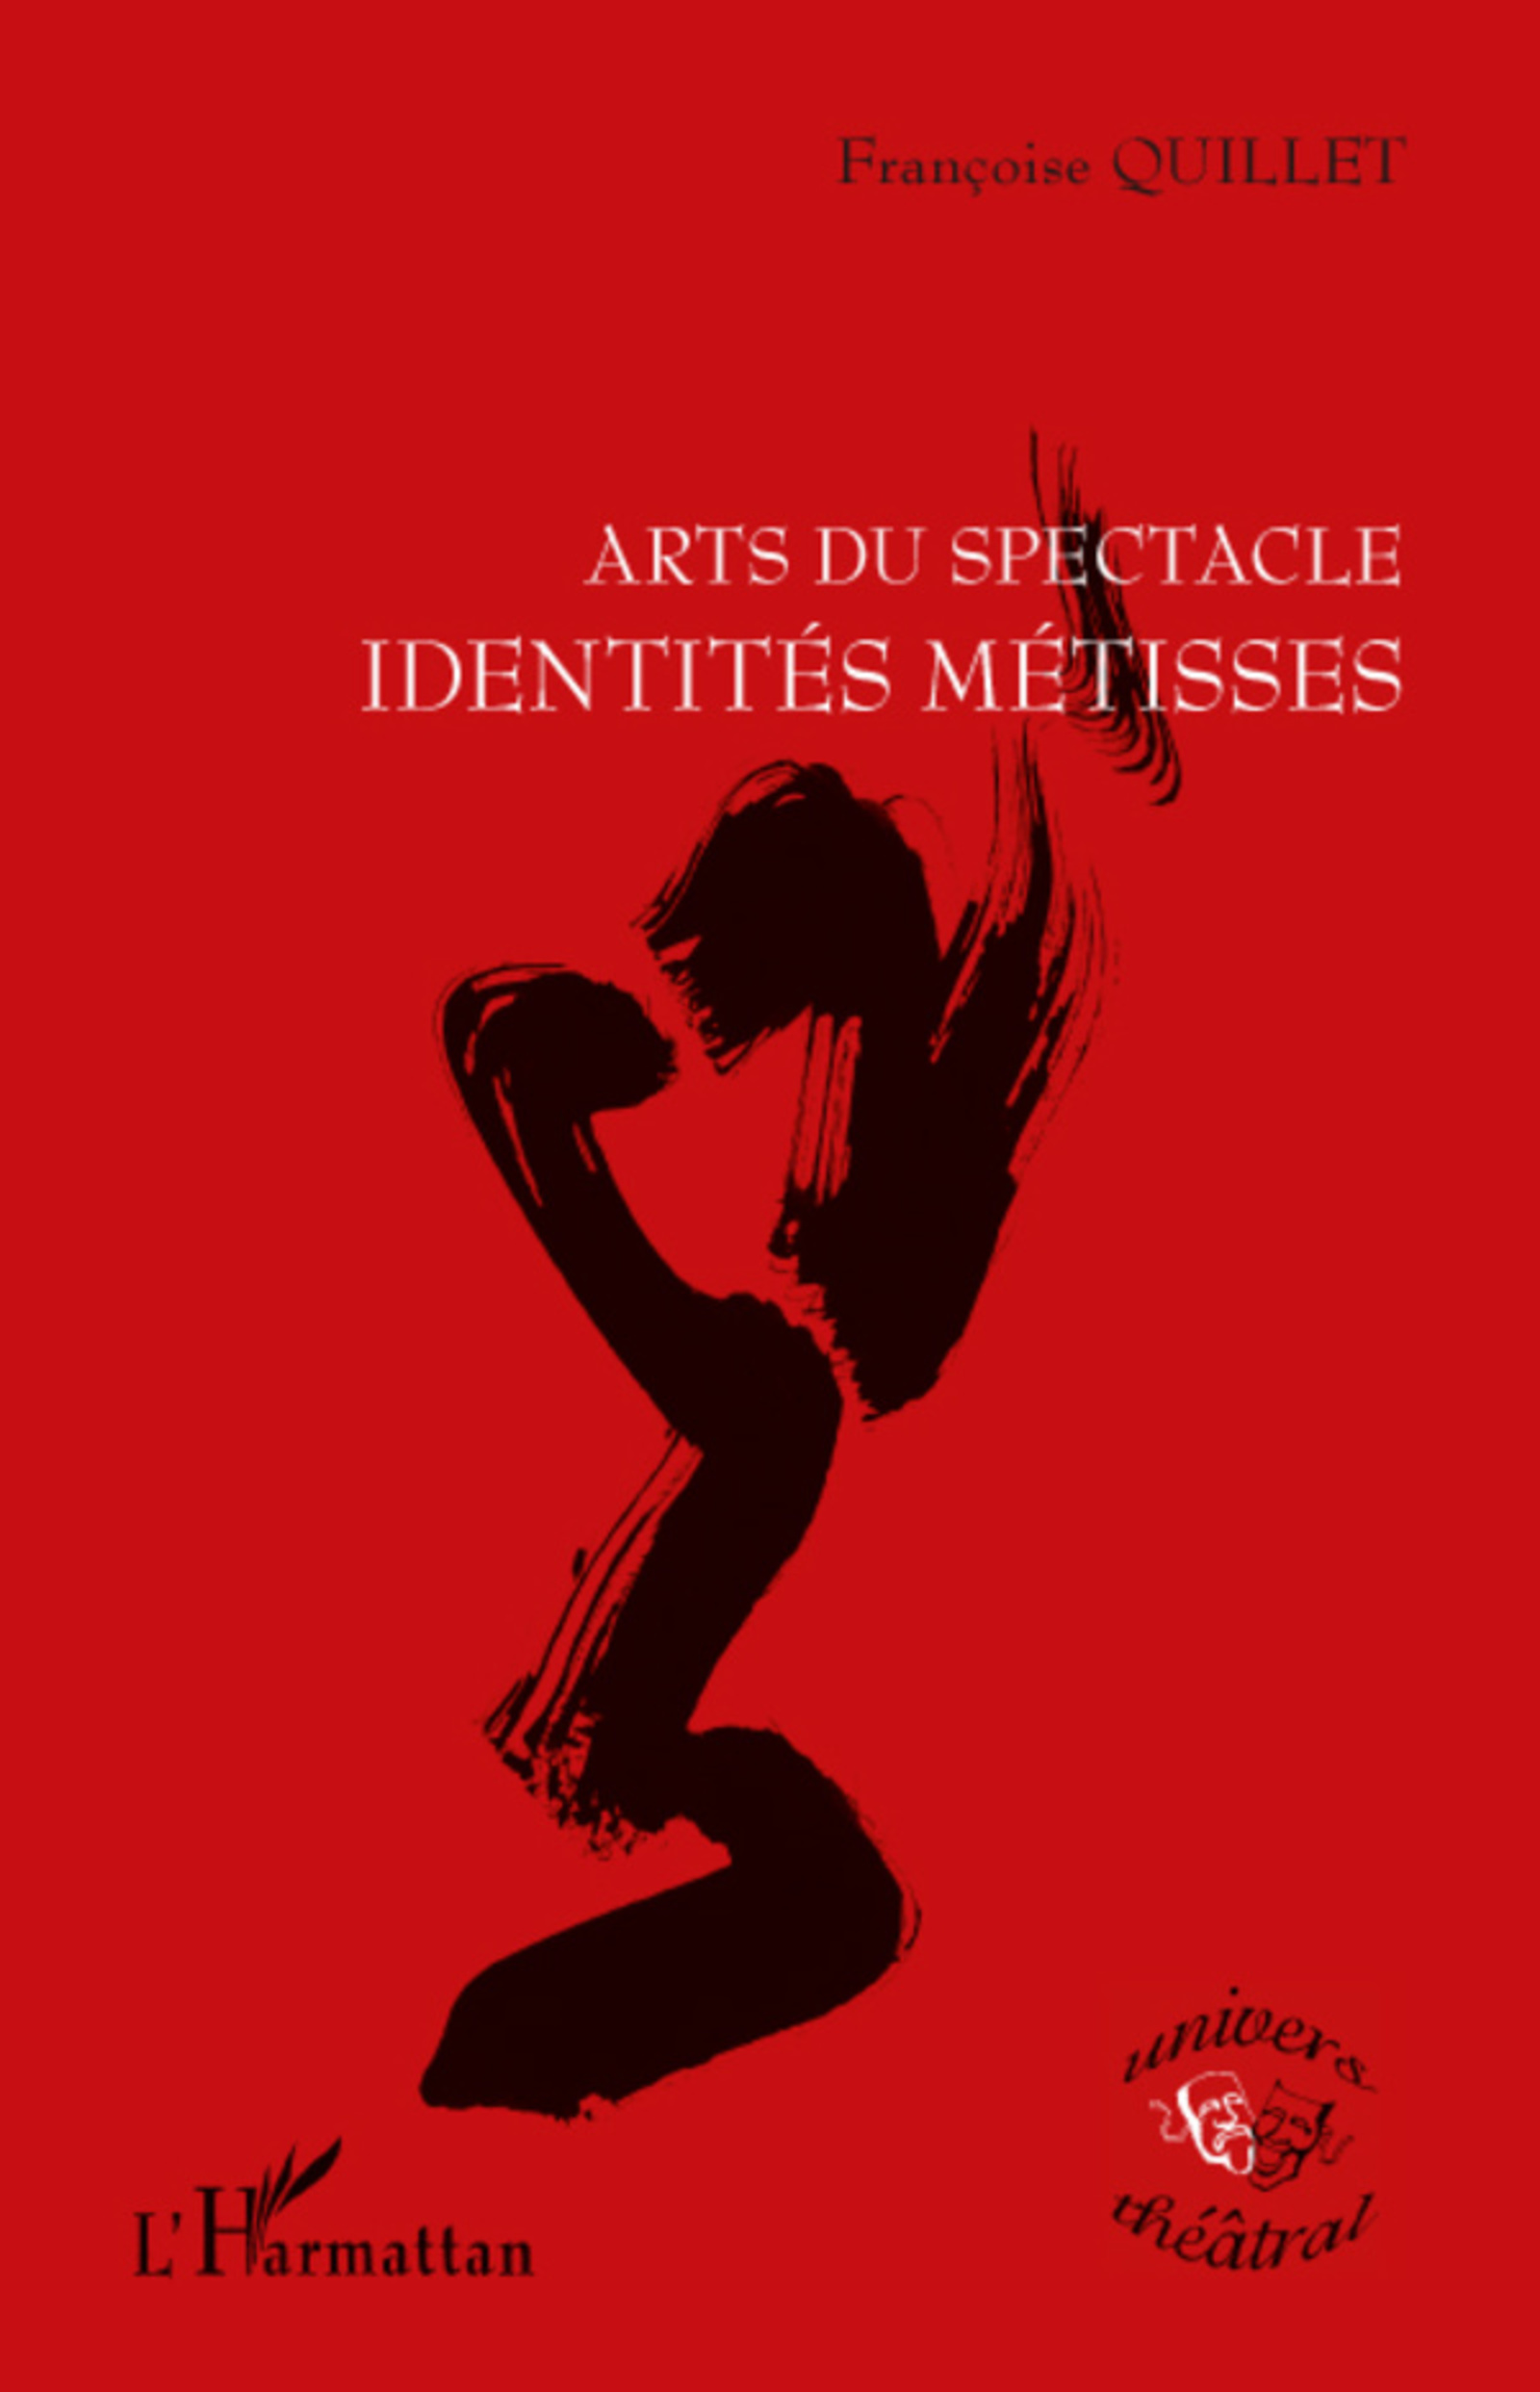 ARTS DU SPECTACLE IDENTITES METISSES